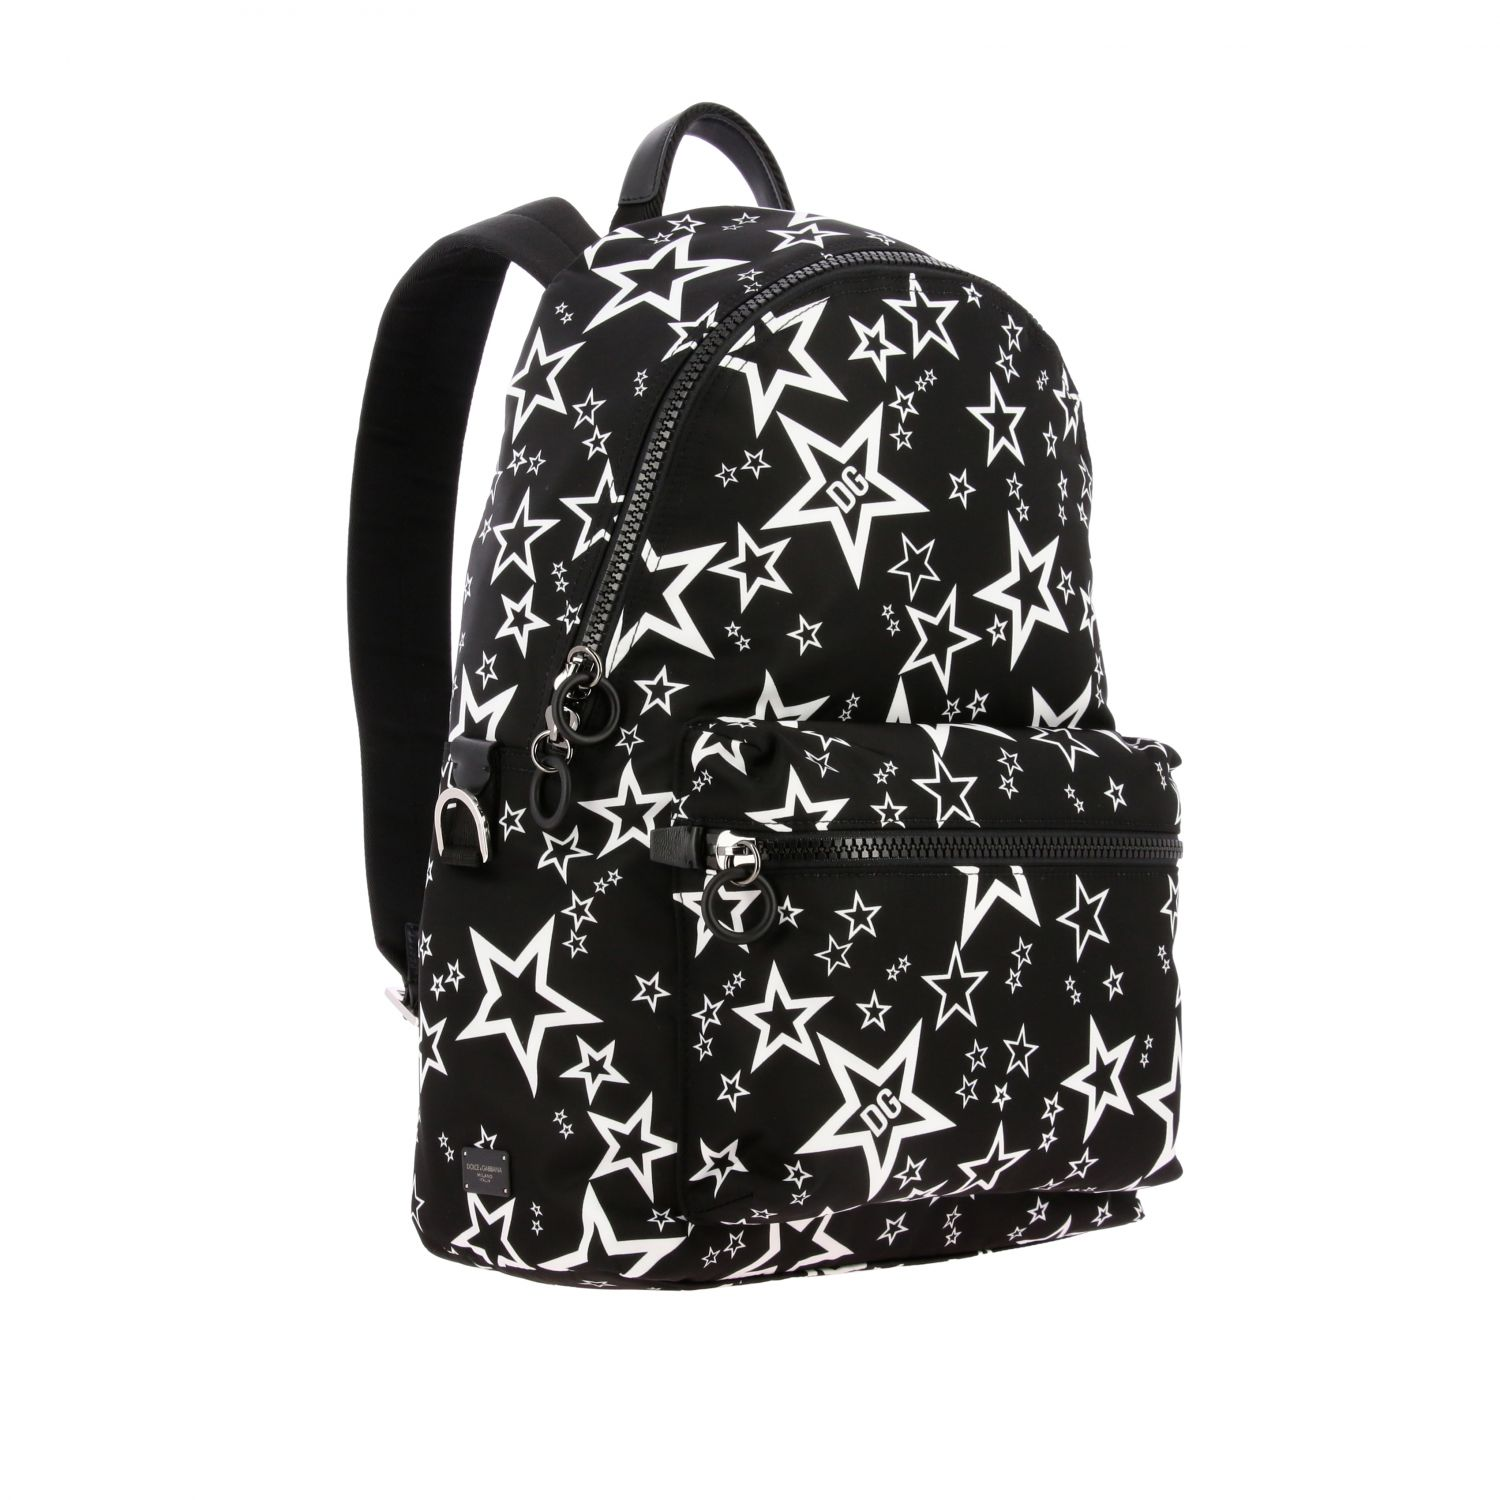 Backpack Dolce & Gabbana: Dolce & Gabbana canvas backpack with all over star print black 2